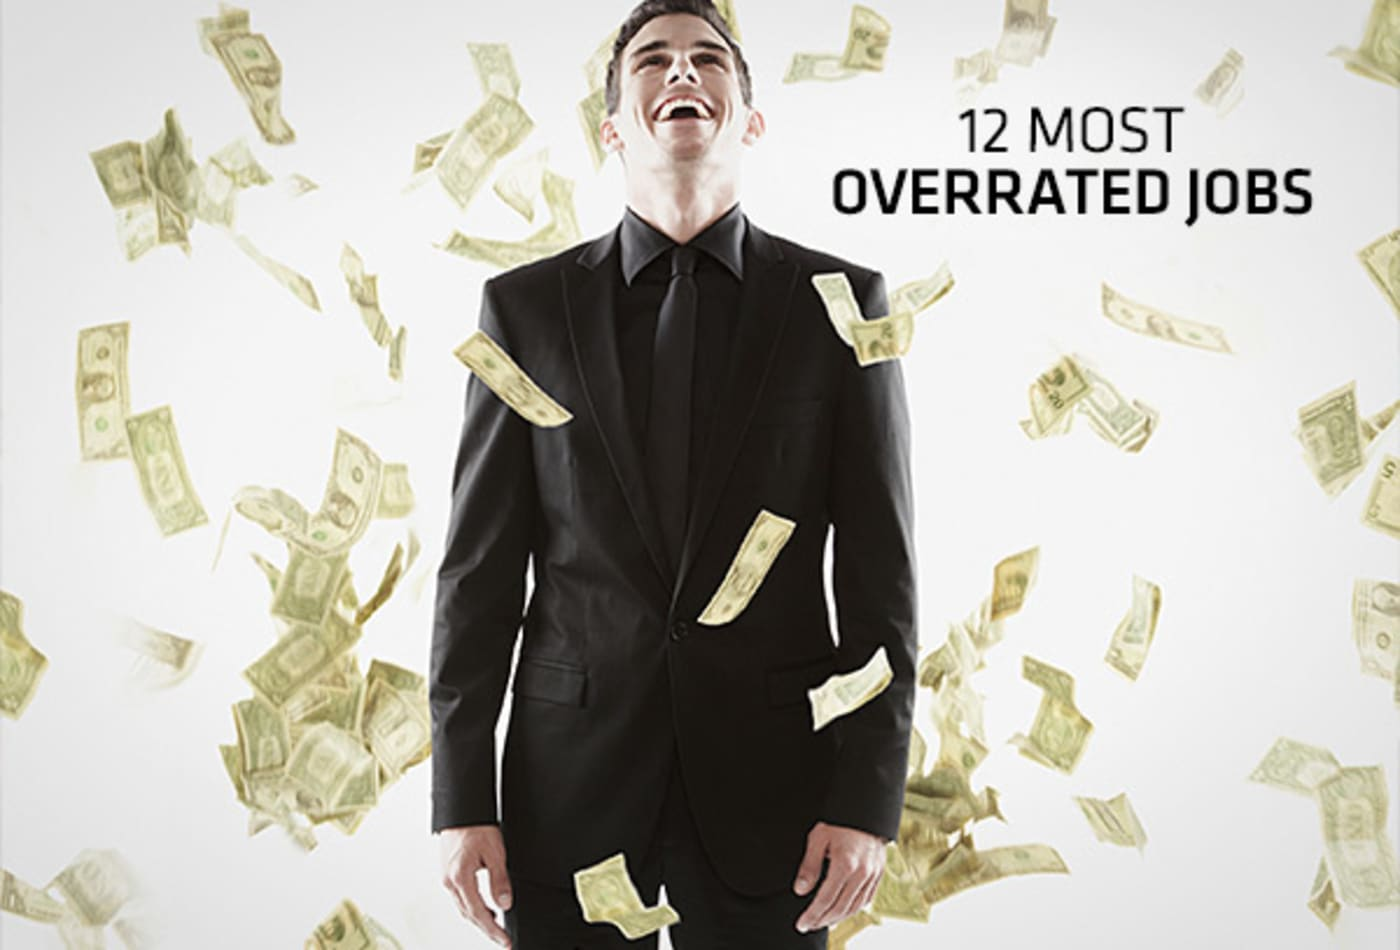 most-overrated-jobs-cover2.jpg